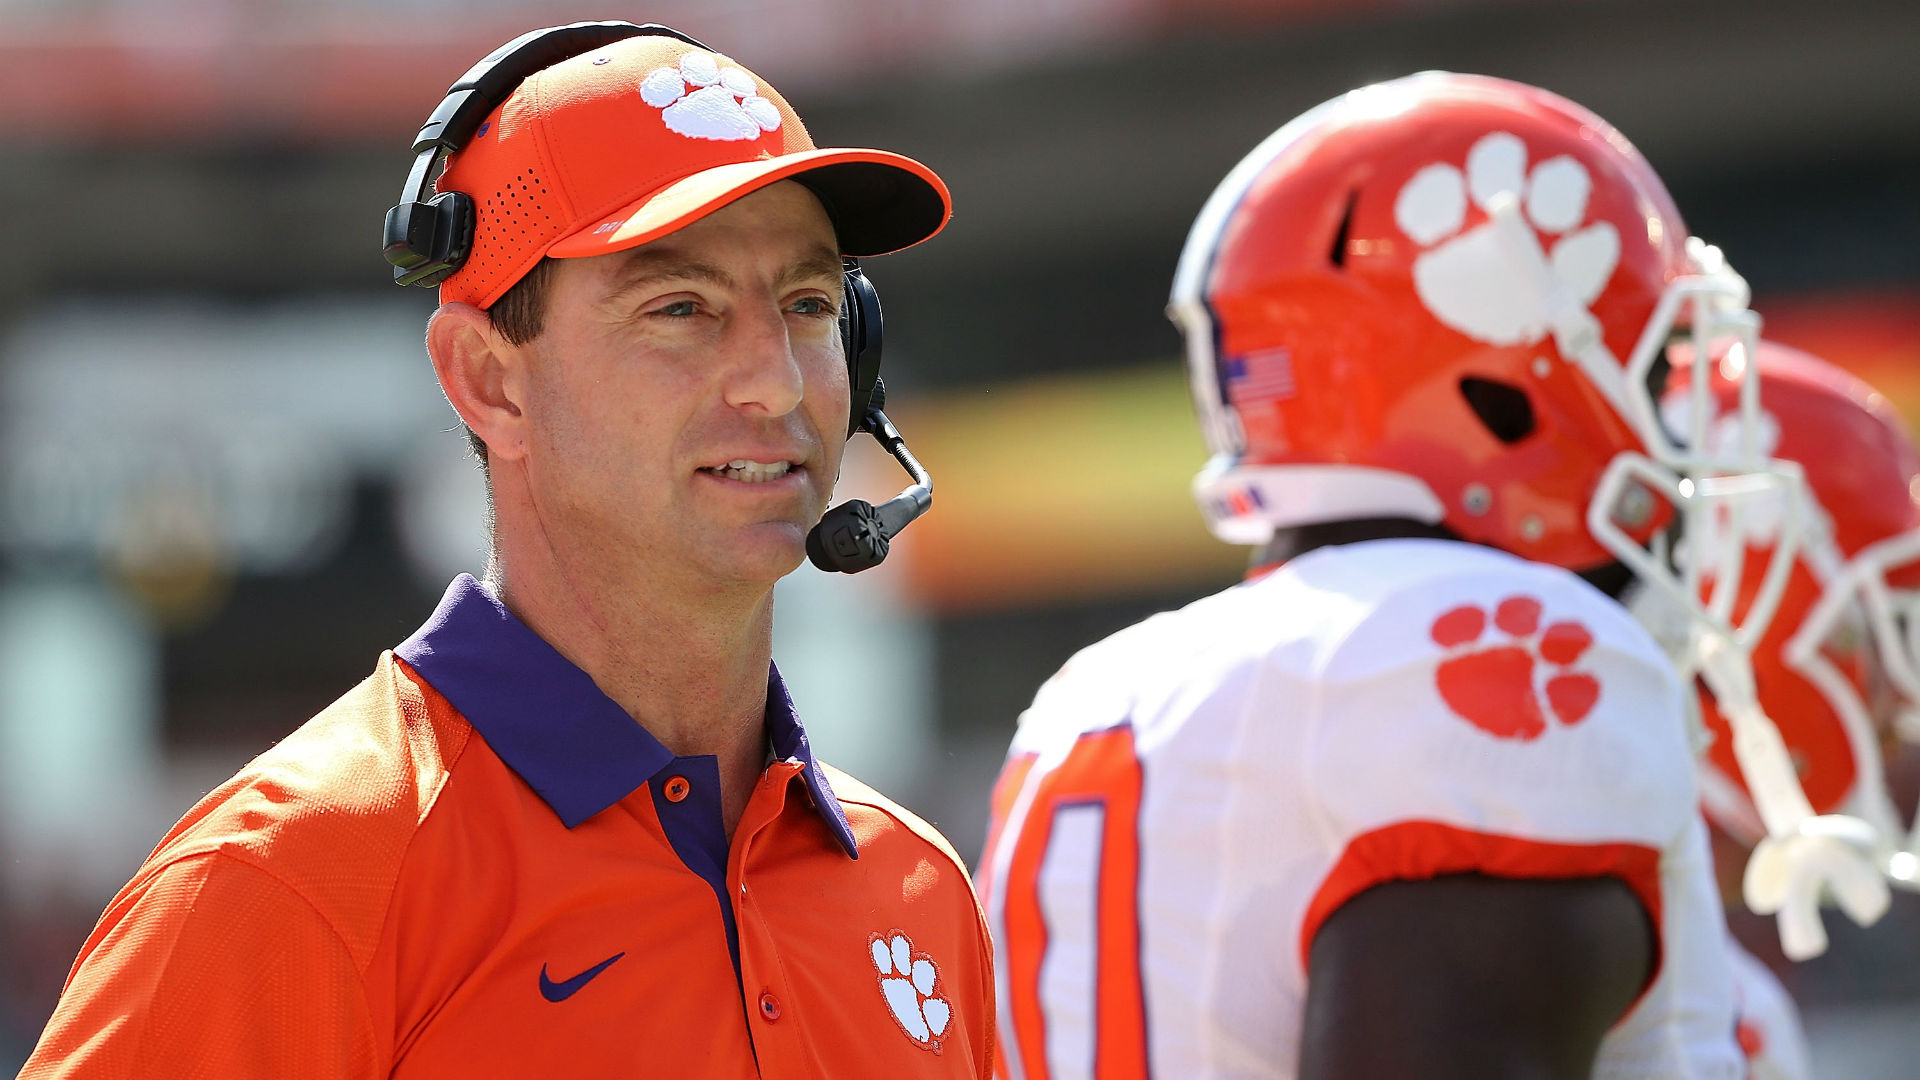 Dabo Swinney not happy with NC State's insinuation of cheating